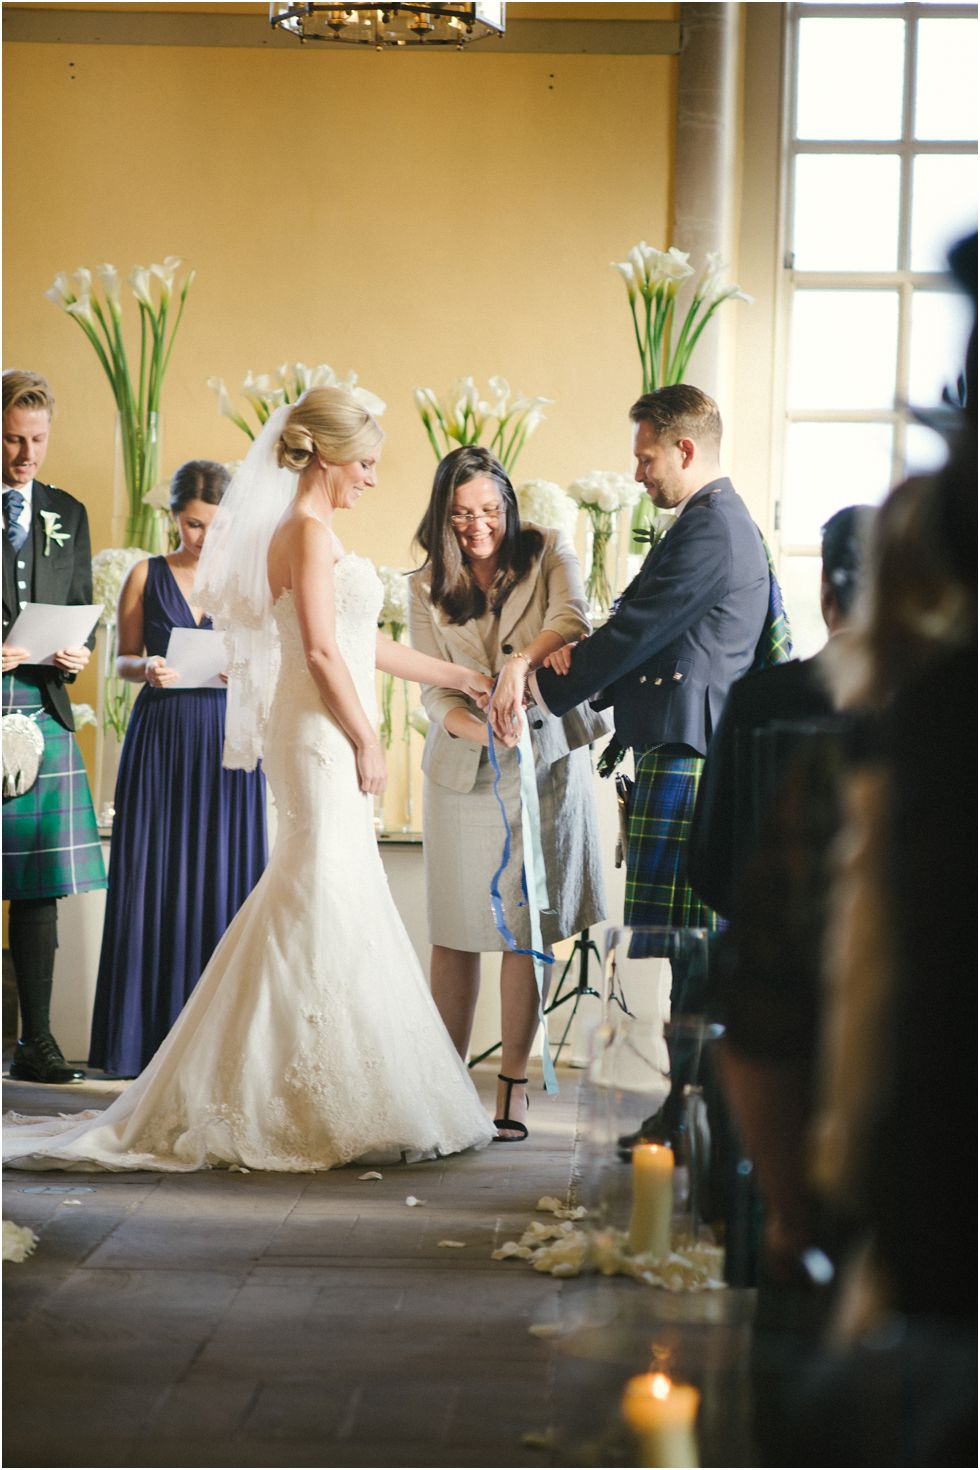 Hopetoun-House-wedding-photography-Edinburgh-34.jpg